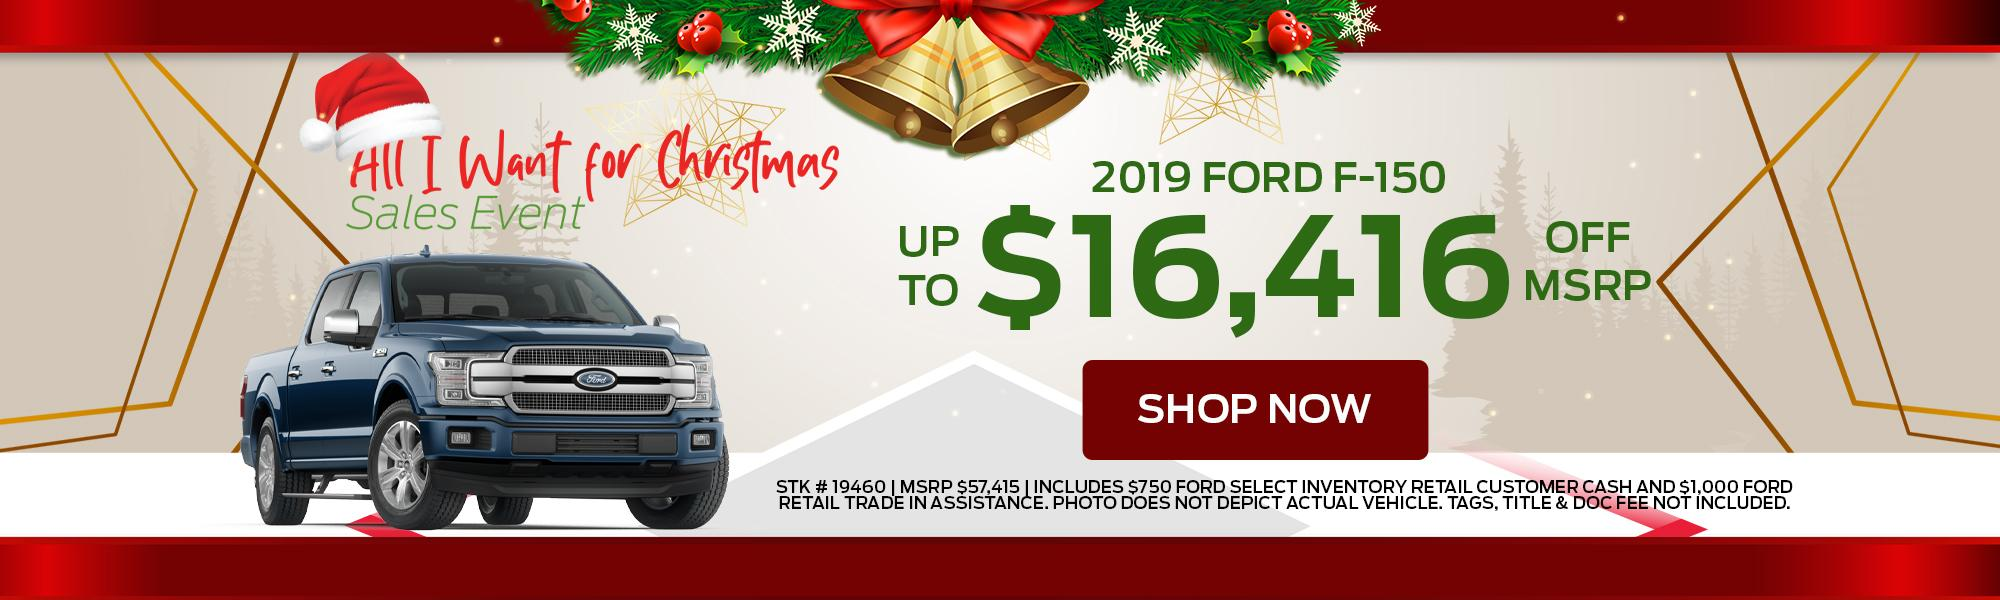 2019 Ford F-150 Offers